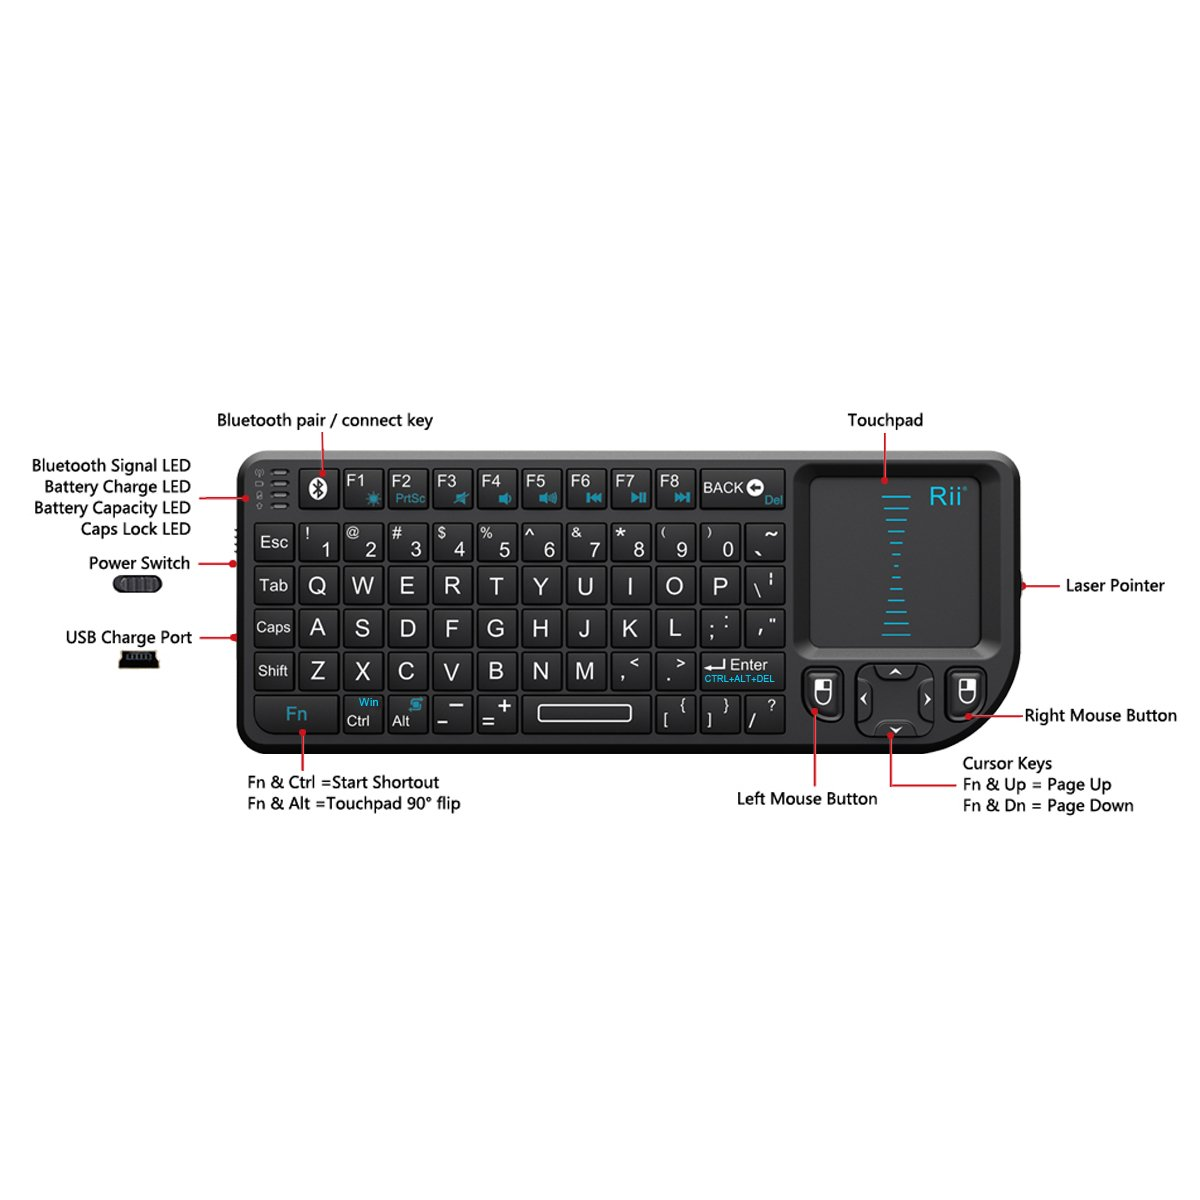 Rii Mini Wireless Bluetooth Keyboard Touchpad with Laser Pointer for Smartphone and Tablet, Black (mini X1 BT) by Rii (Image #2)